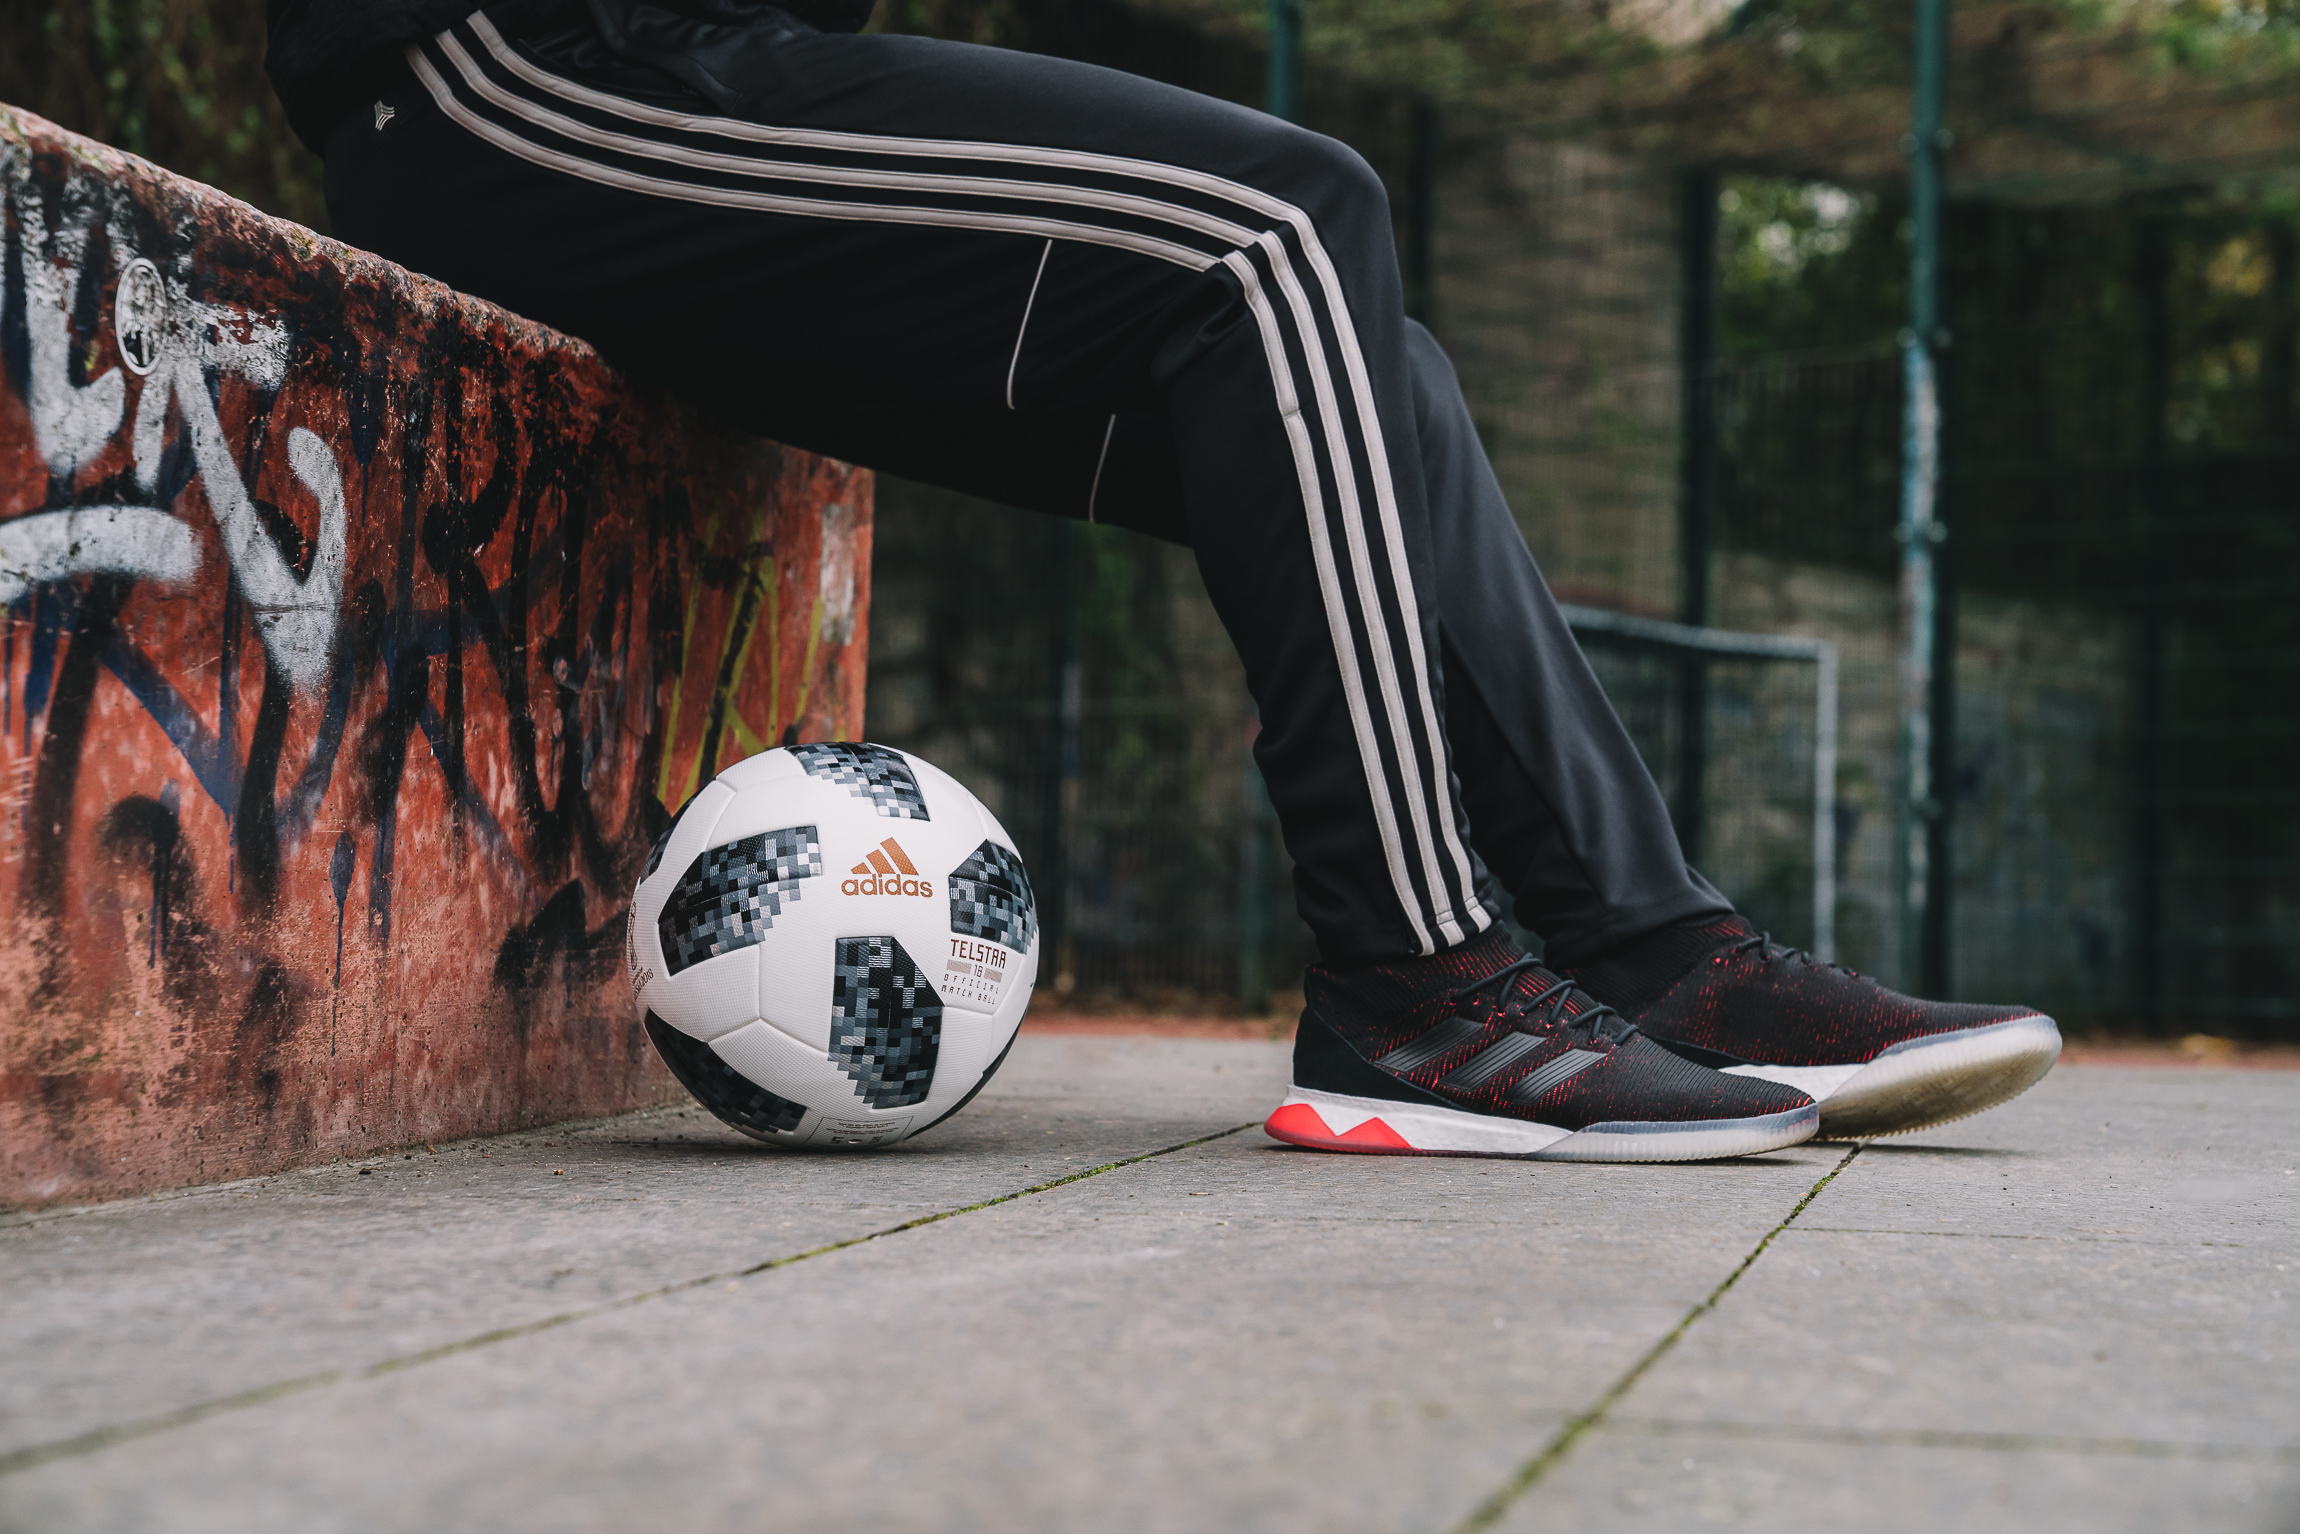 d8aff5c3f9a8 adidas Football Take It to the Streets with the Predator Tango